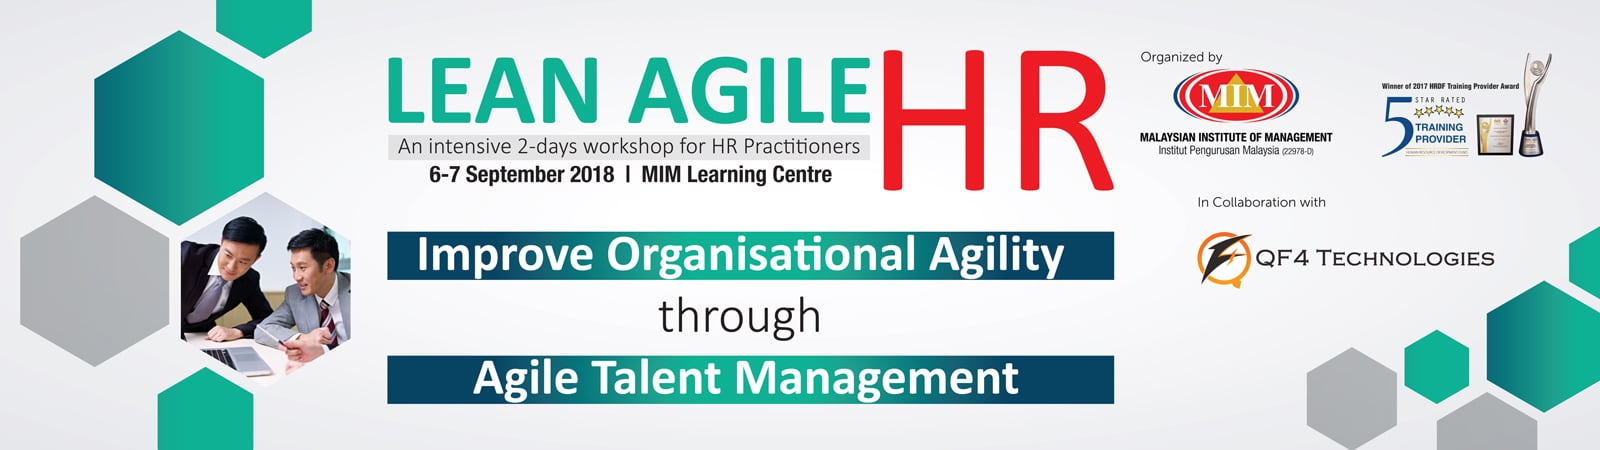 Lean-Agile-Implementation-in-HR